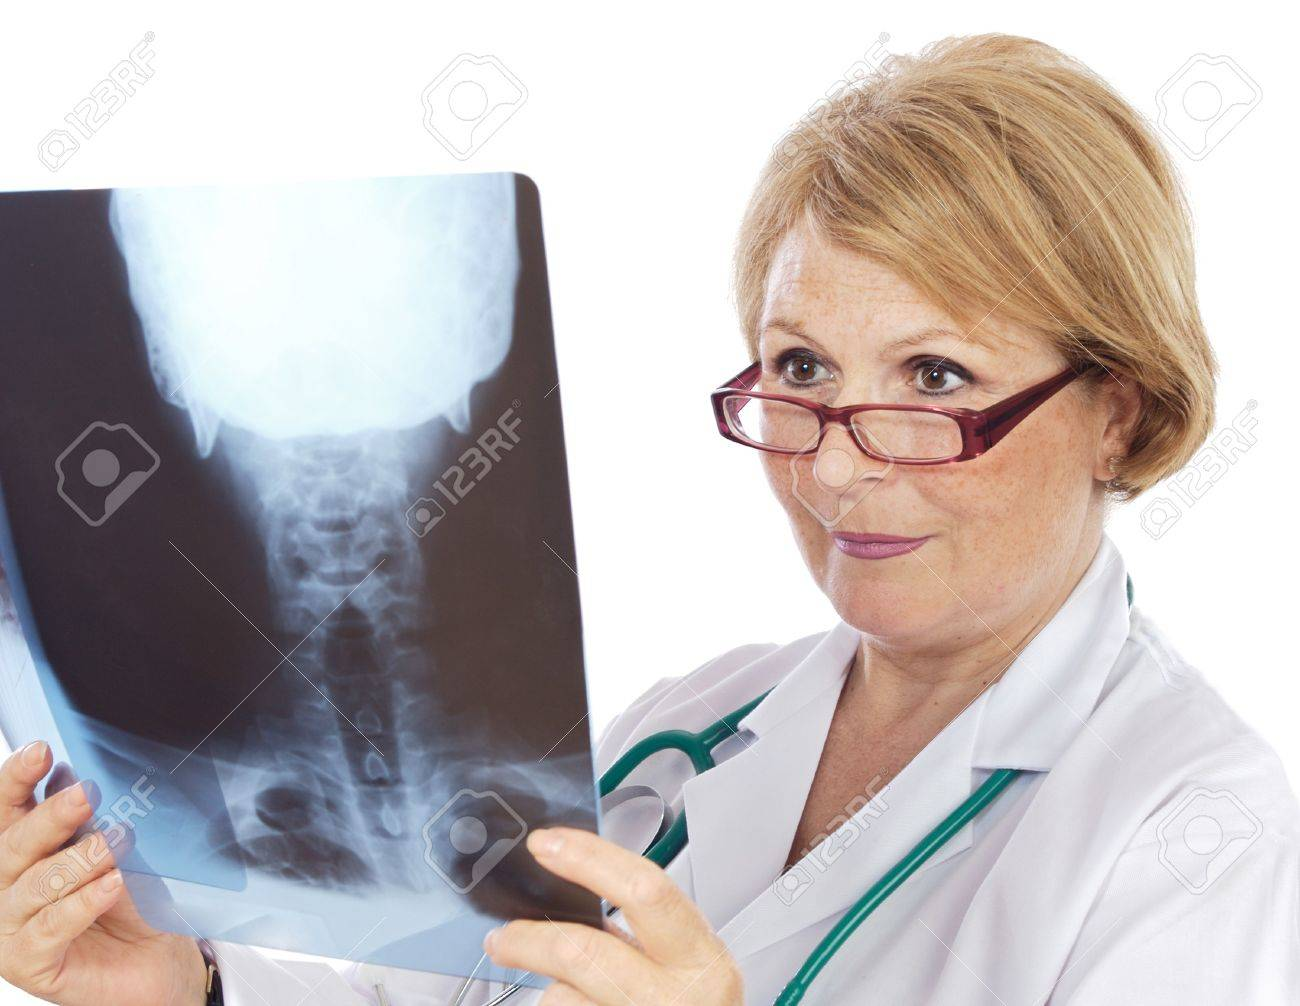 Female doctor radiologist a over white background Stock Photo - 4445230